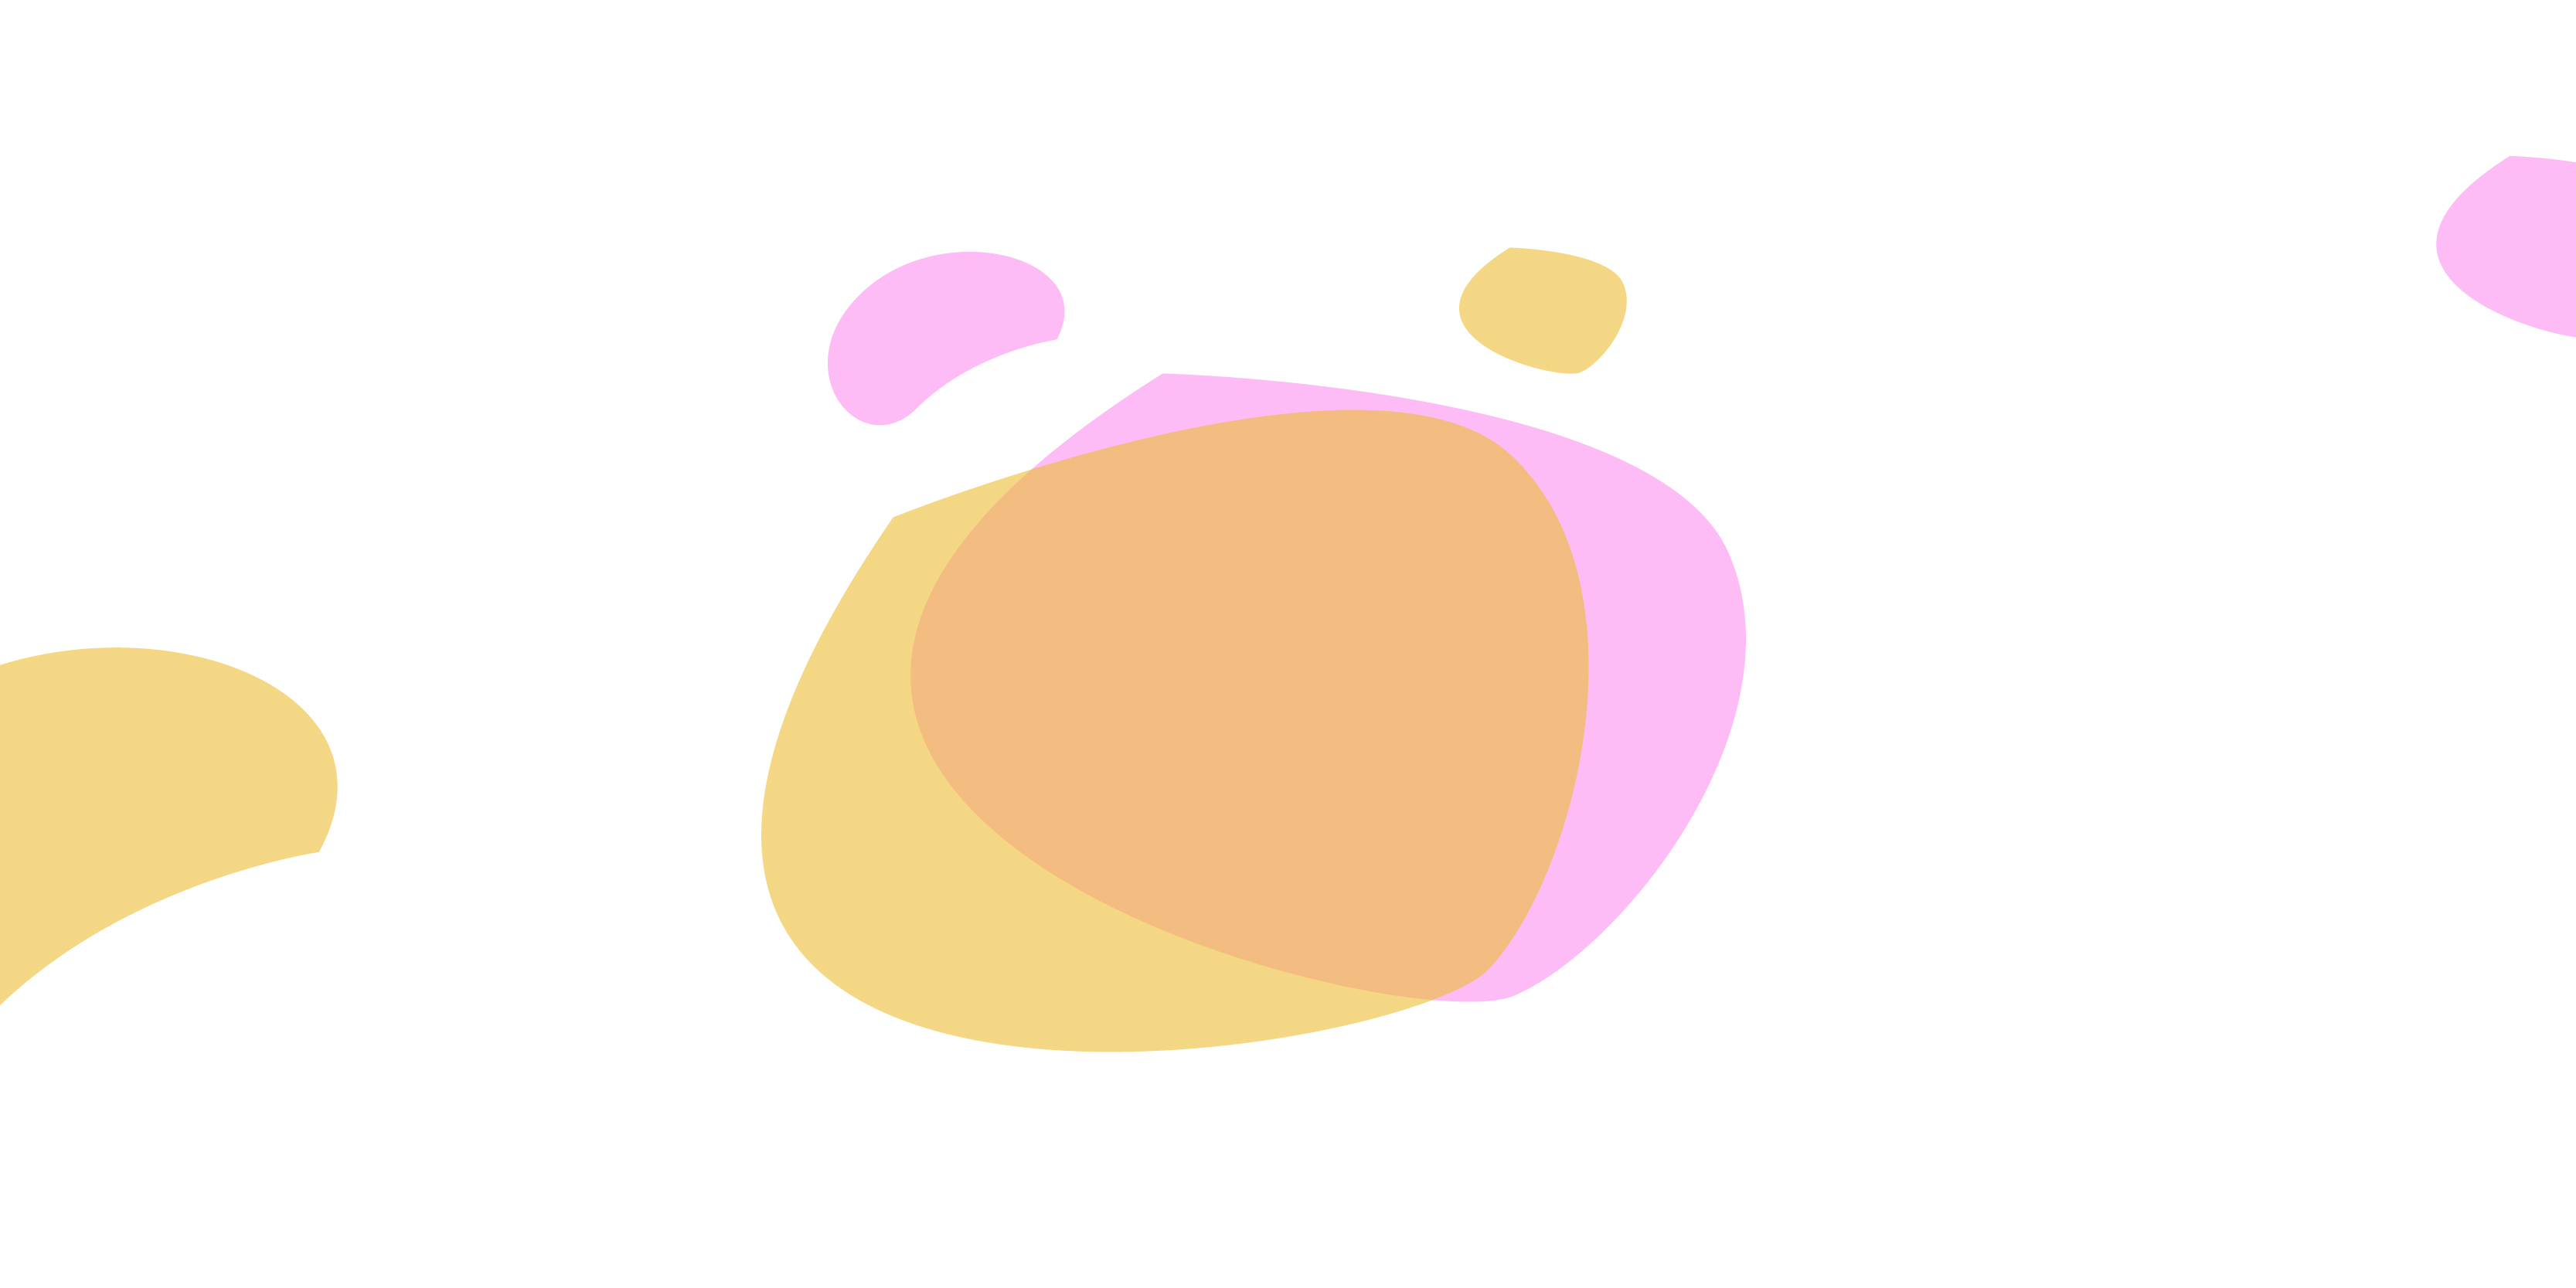 Animated- shapes- blobs